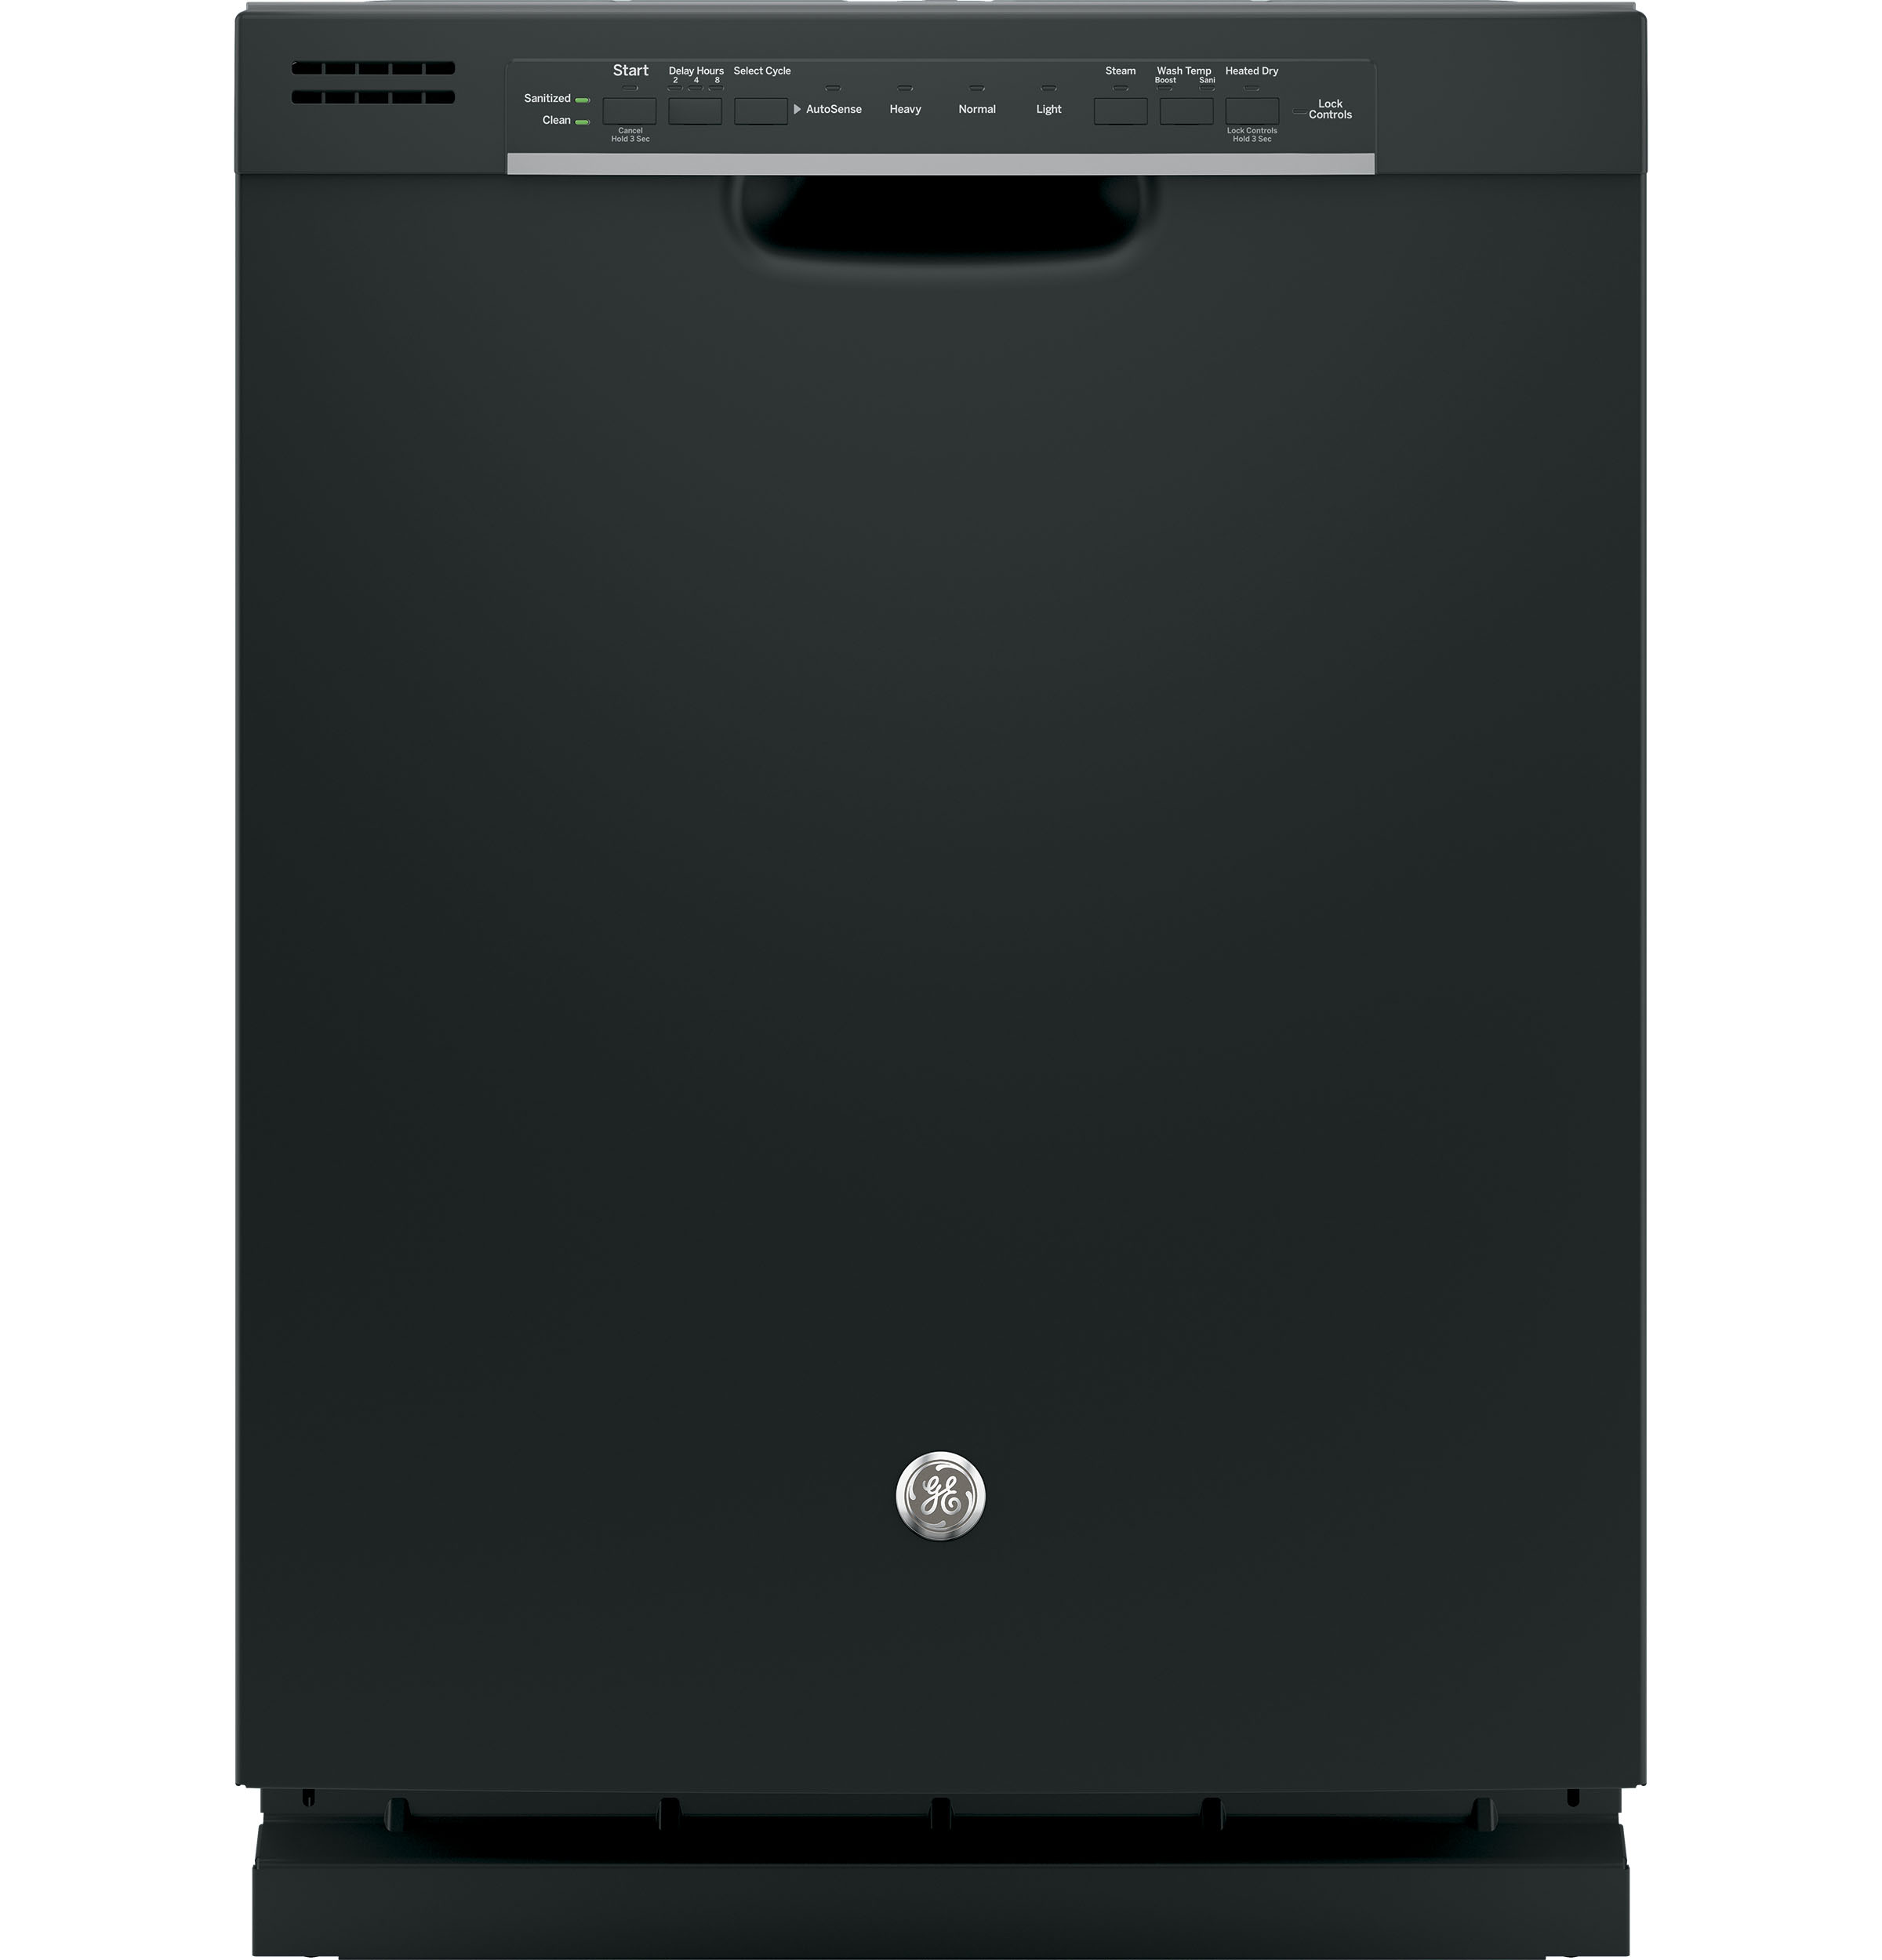 Ge Appliance Customer Service 800 Gear Dishwasher With Front Controls Gdf520pgjbb Ge Appliances